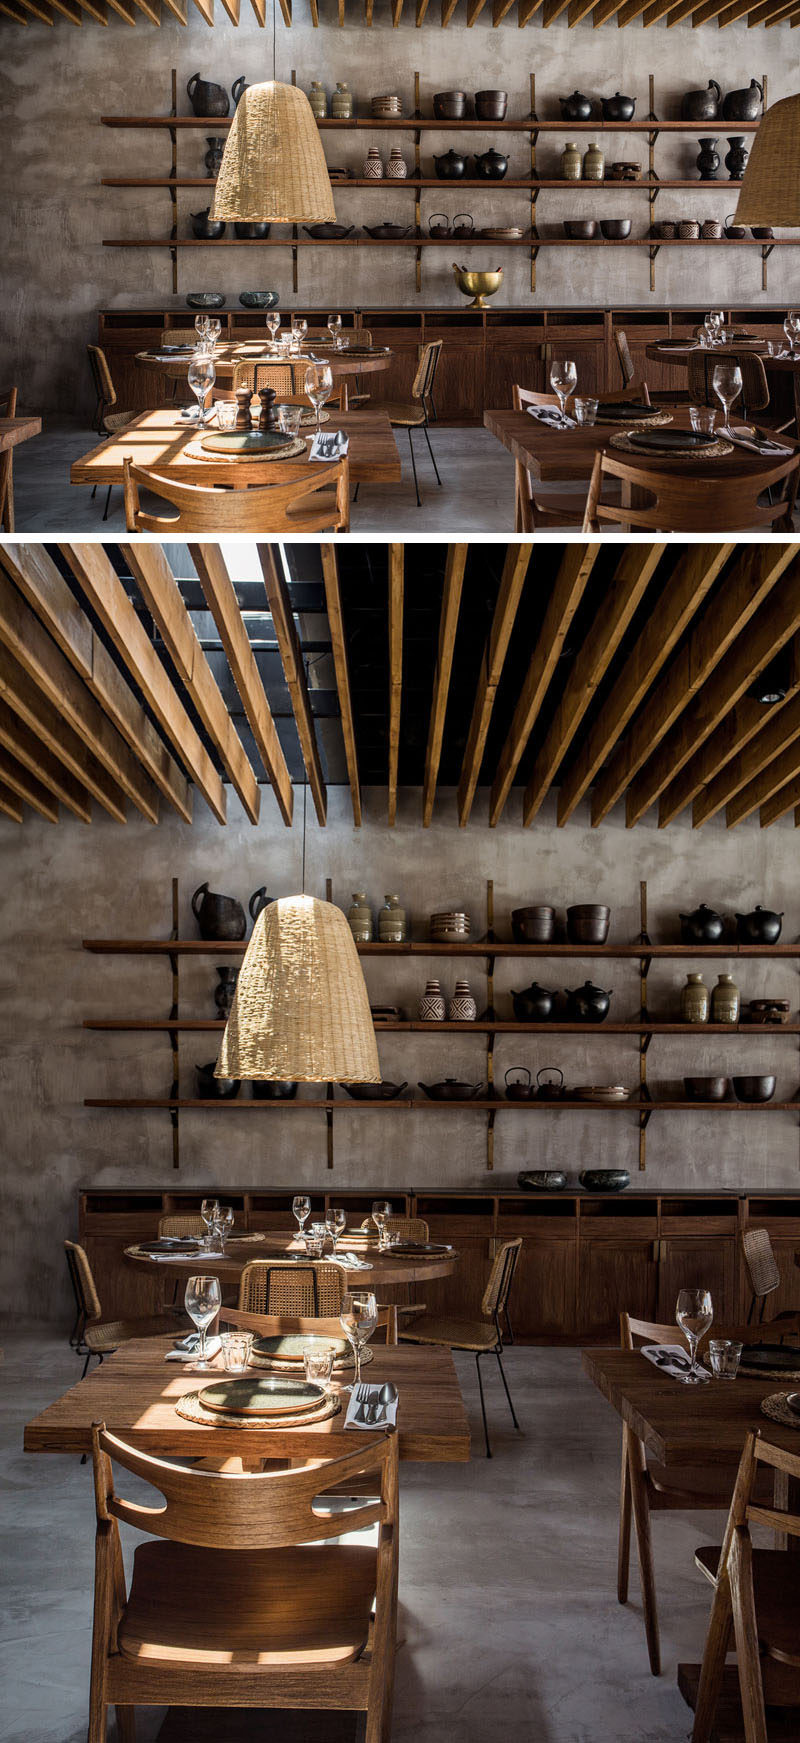 Throughout the design of this hotel in Greece, warm grey walls have been paired with wood elements to create a relaxing and contemporary appearance. #InteriorDesign #Restaurant #Hotel #Shelving